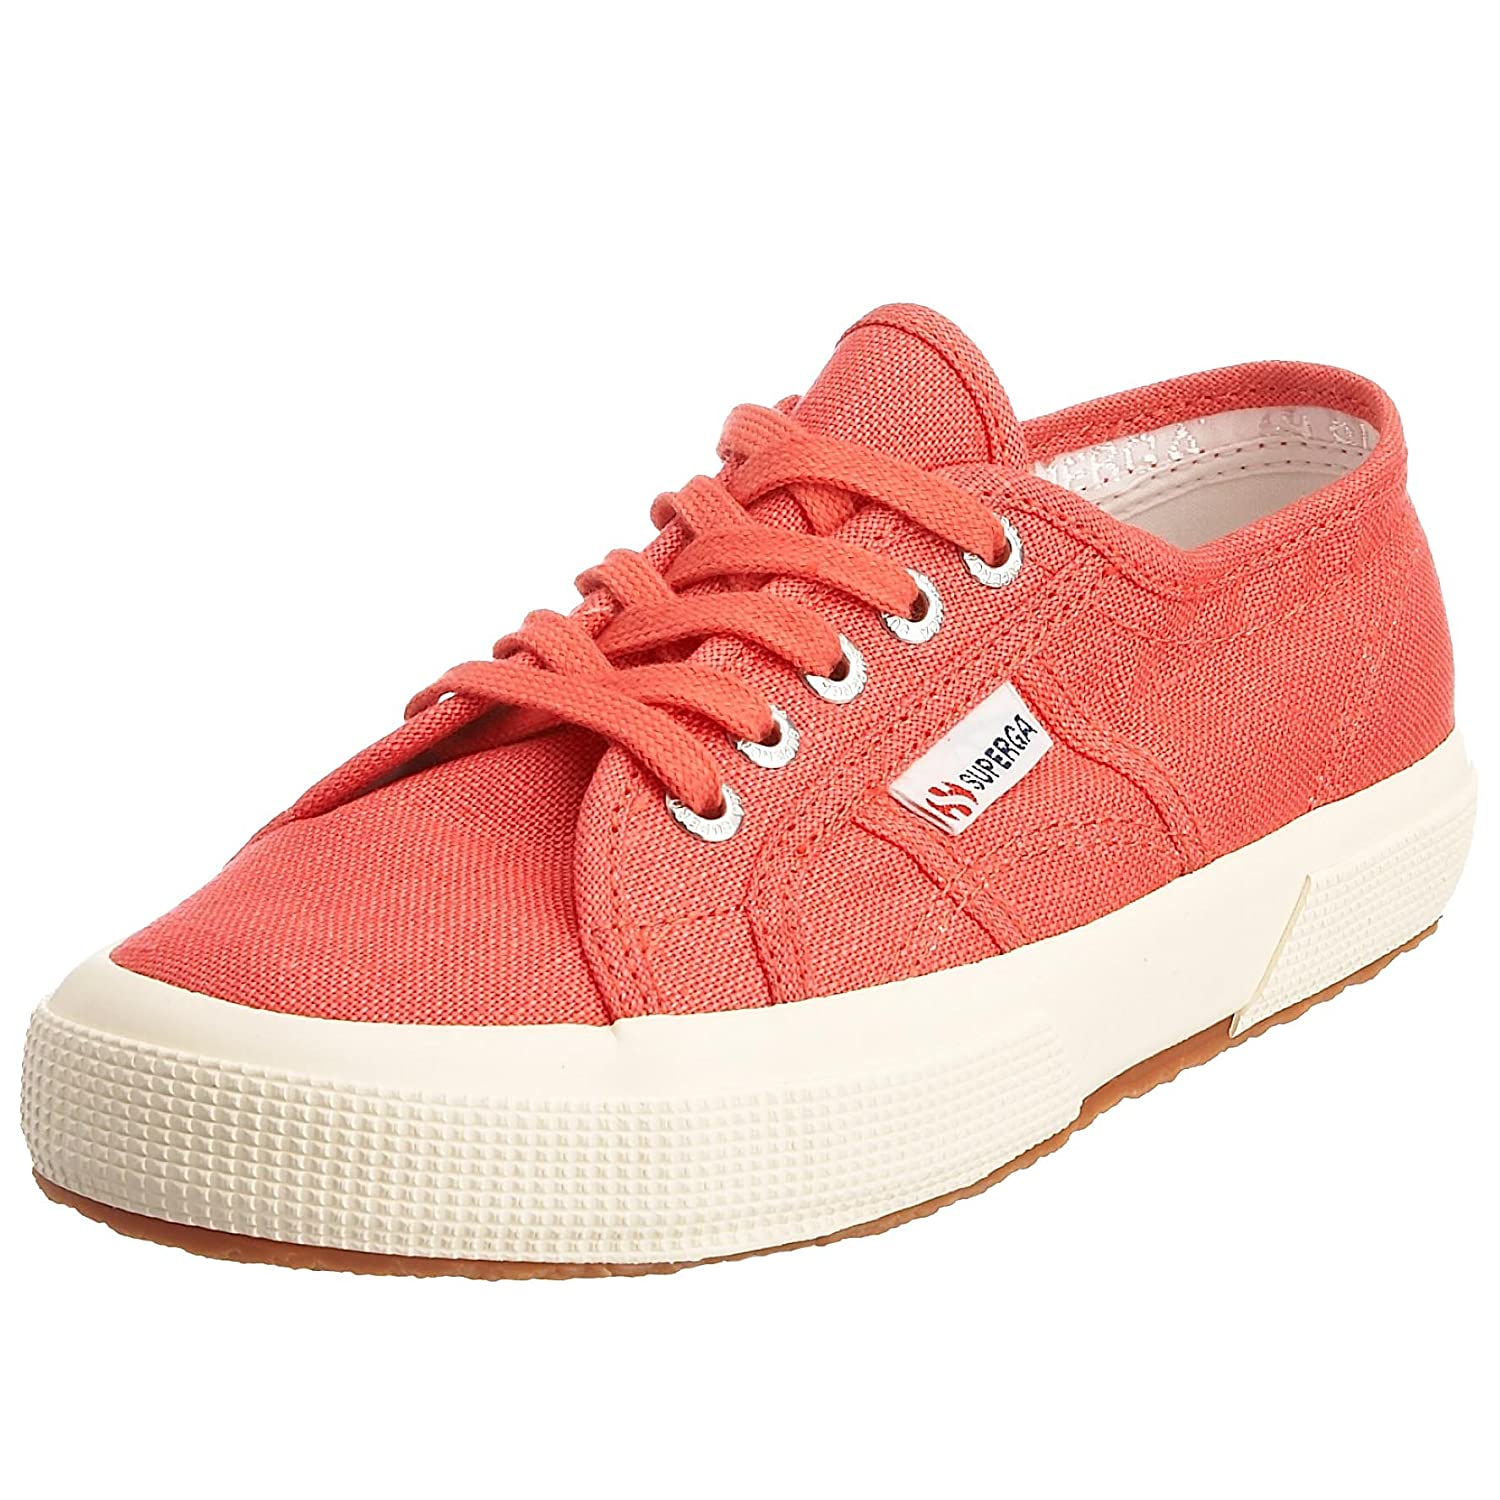 Superga 2750 Cotu 2750 Classic, Baskets mixte Superga adulte Orange (Corail mixte épicé_w30) 3a09a99 - therethere.space